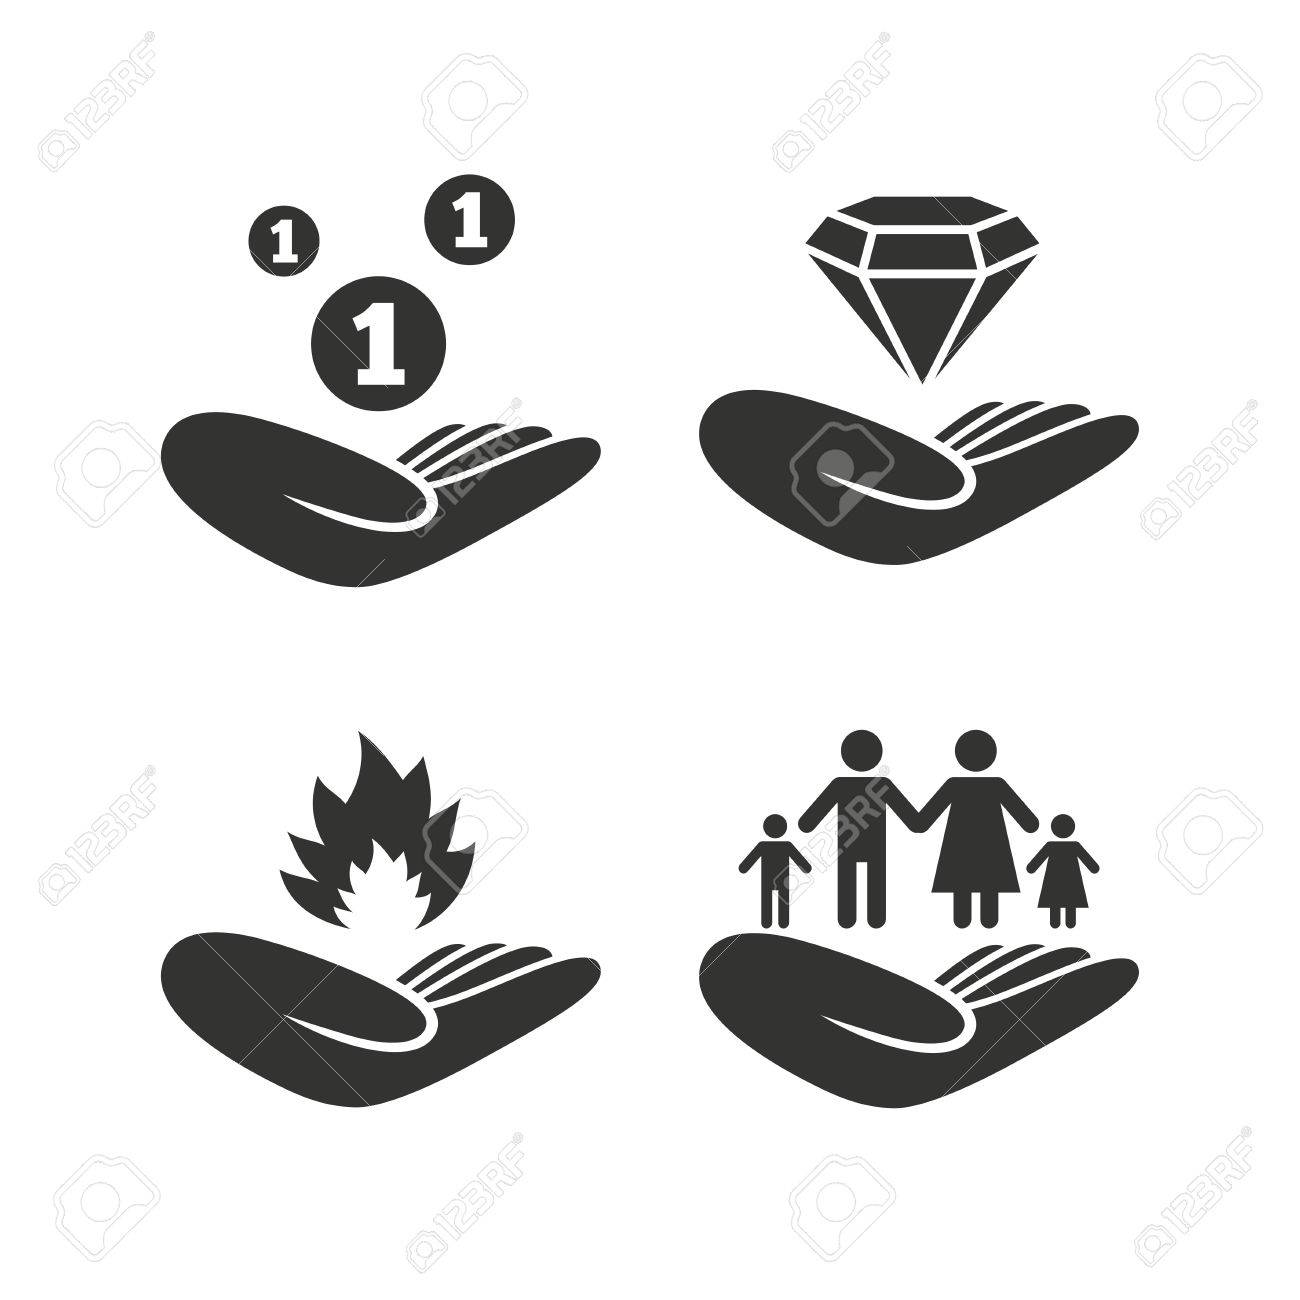 Helping hands symbol choice image symbol and sign ideas helping hands icons financial money savings family life helping hands icons financial money savings family life biocorpaavc